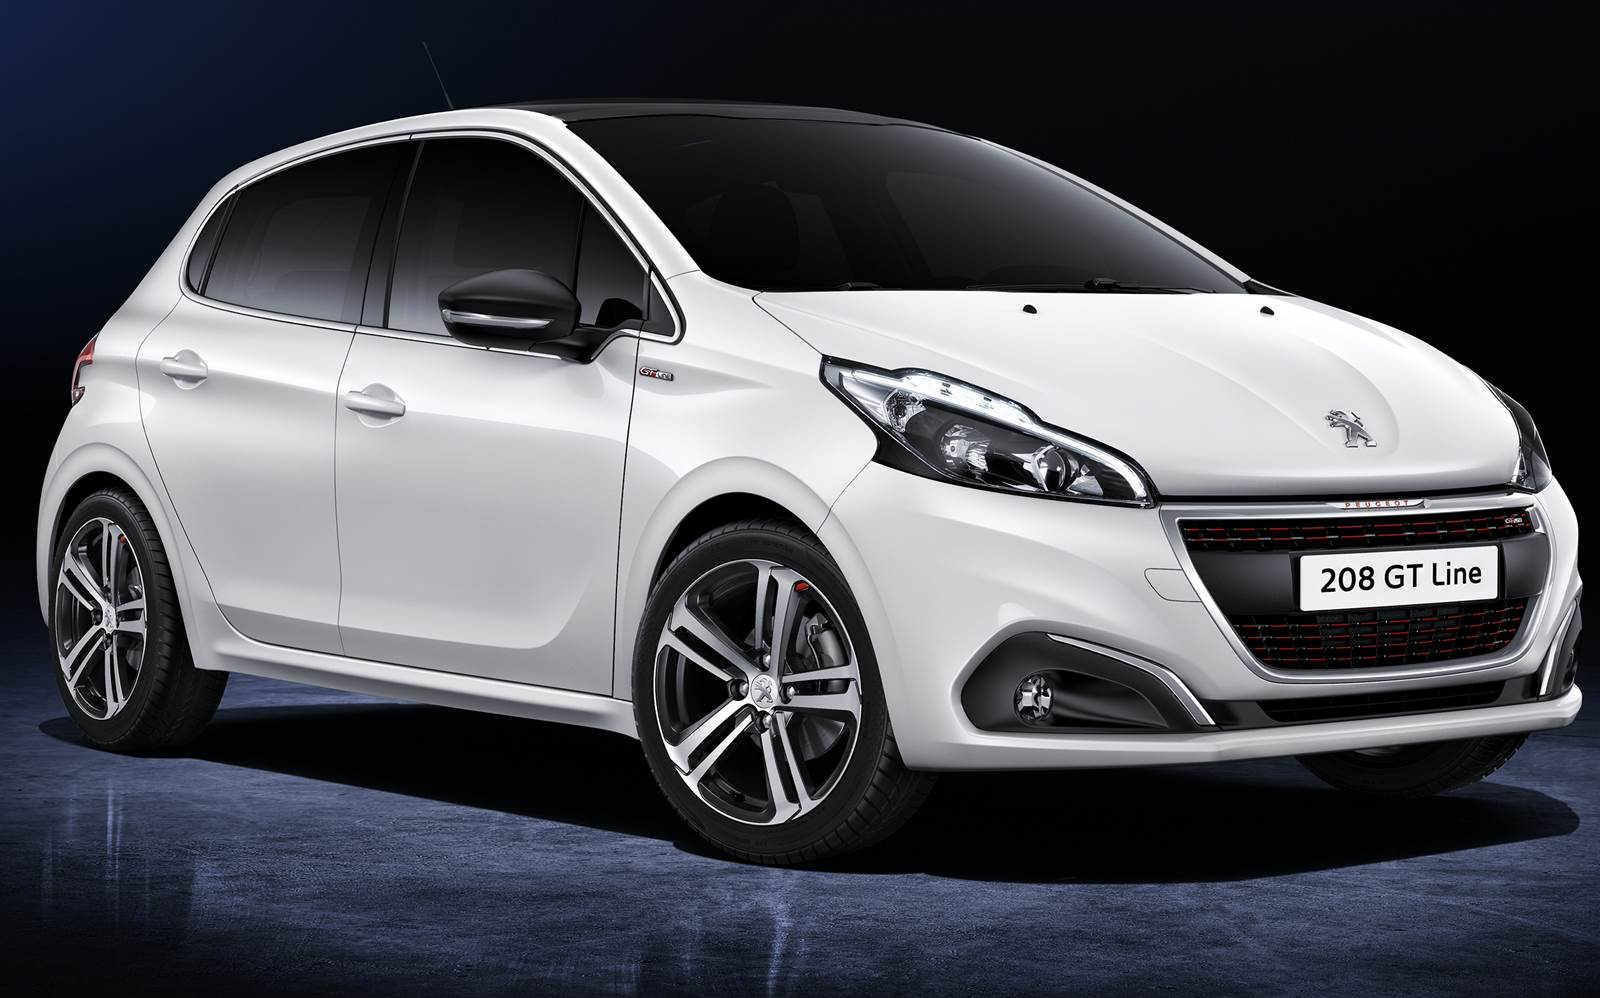 nuevo peugeot 208 gt line 2016 en latinoamerica y europa blog de coches. Black Bedroom Furniture Sets. Home Design Ideas